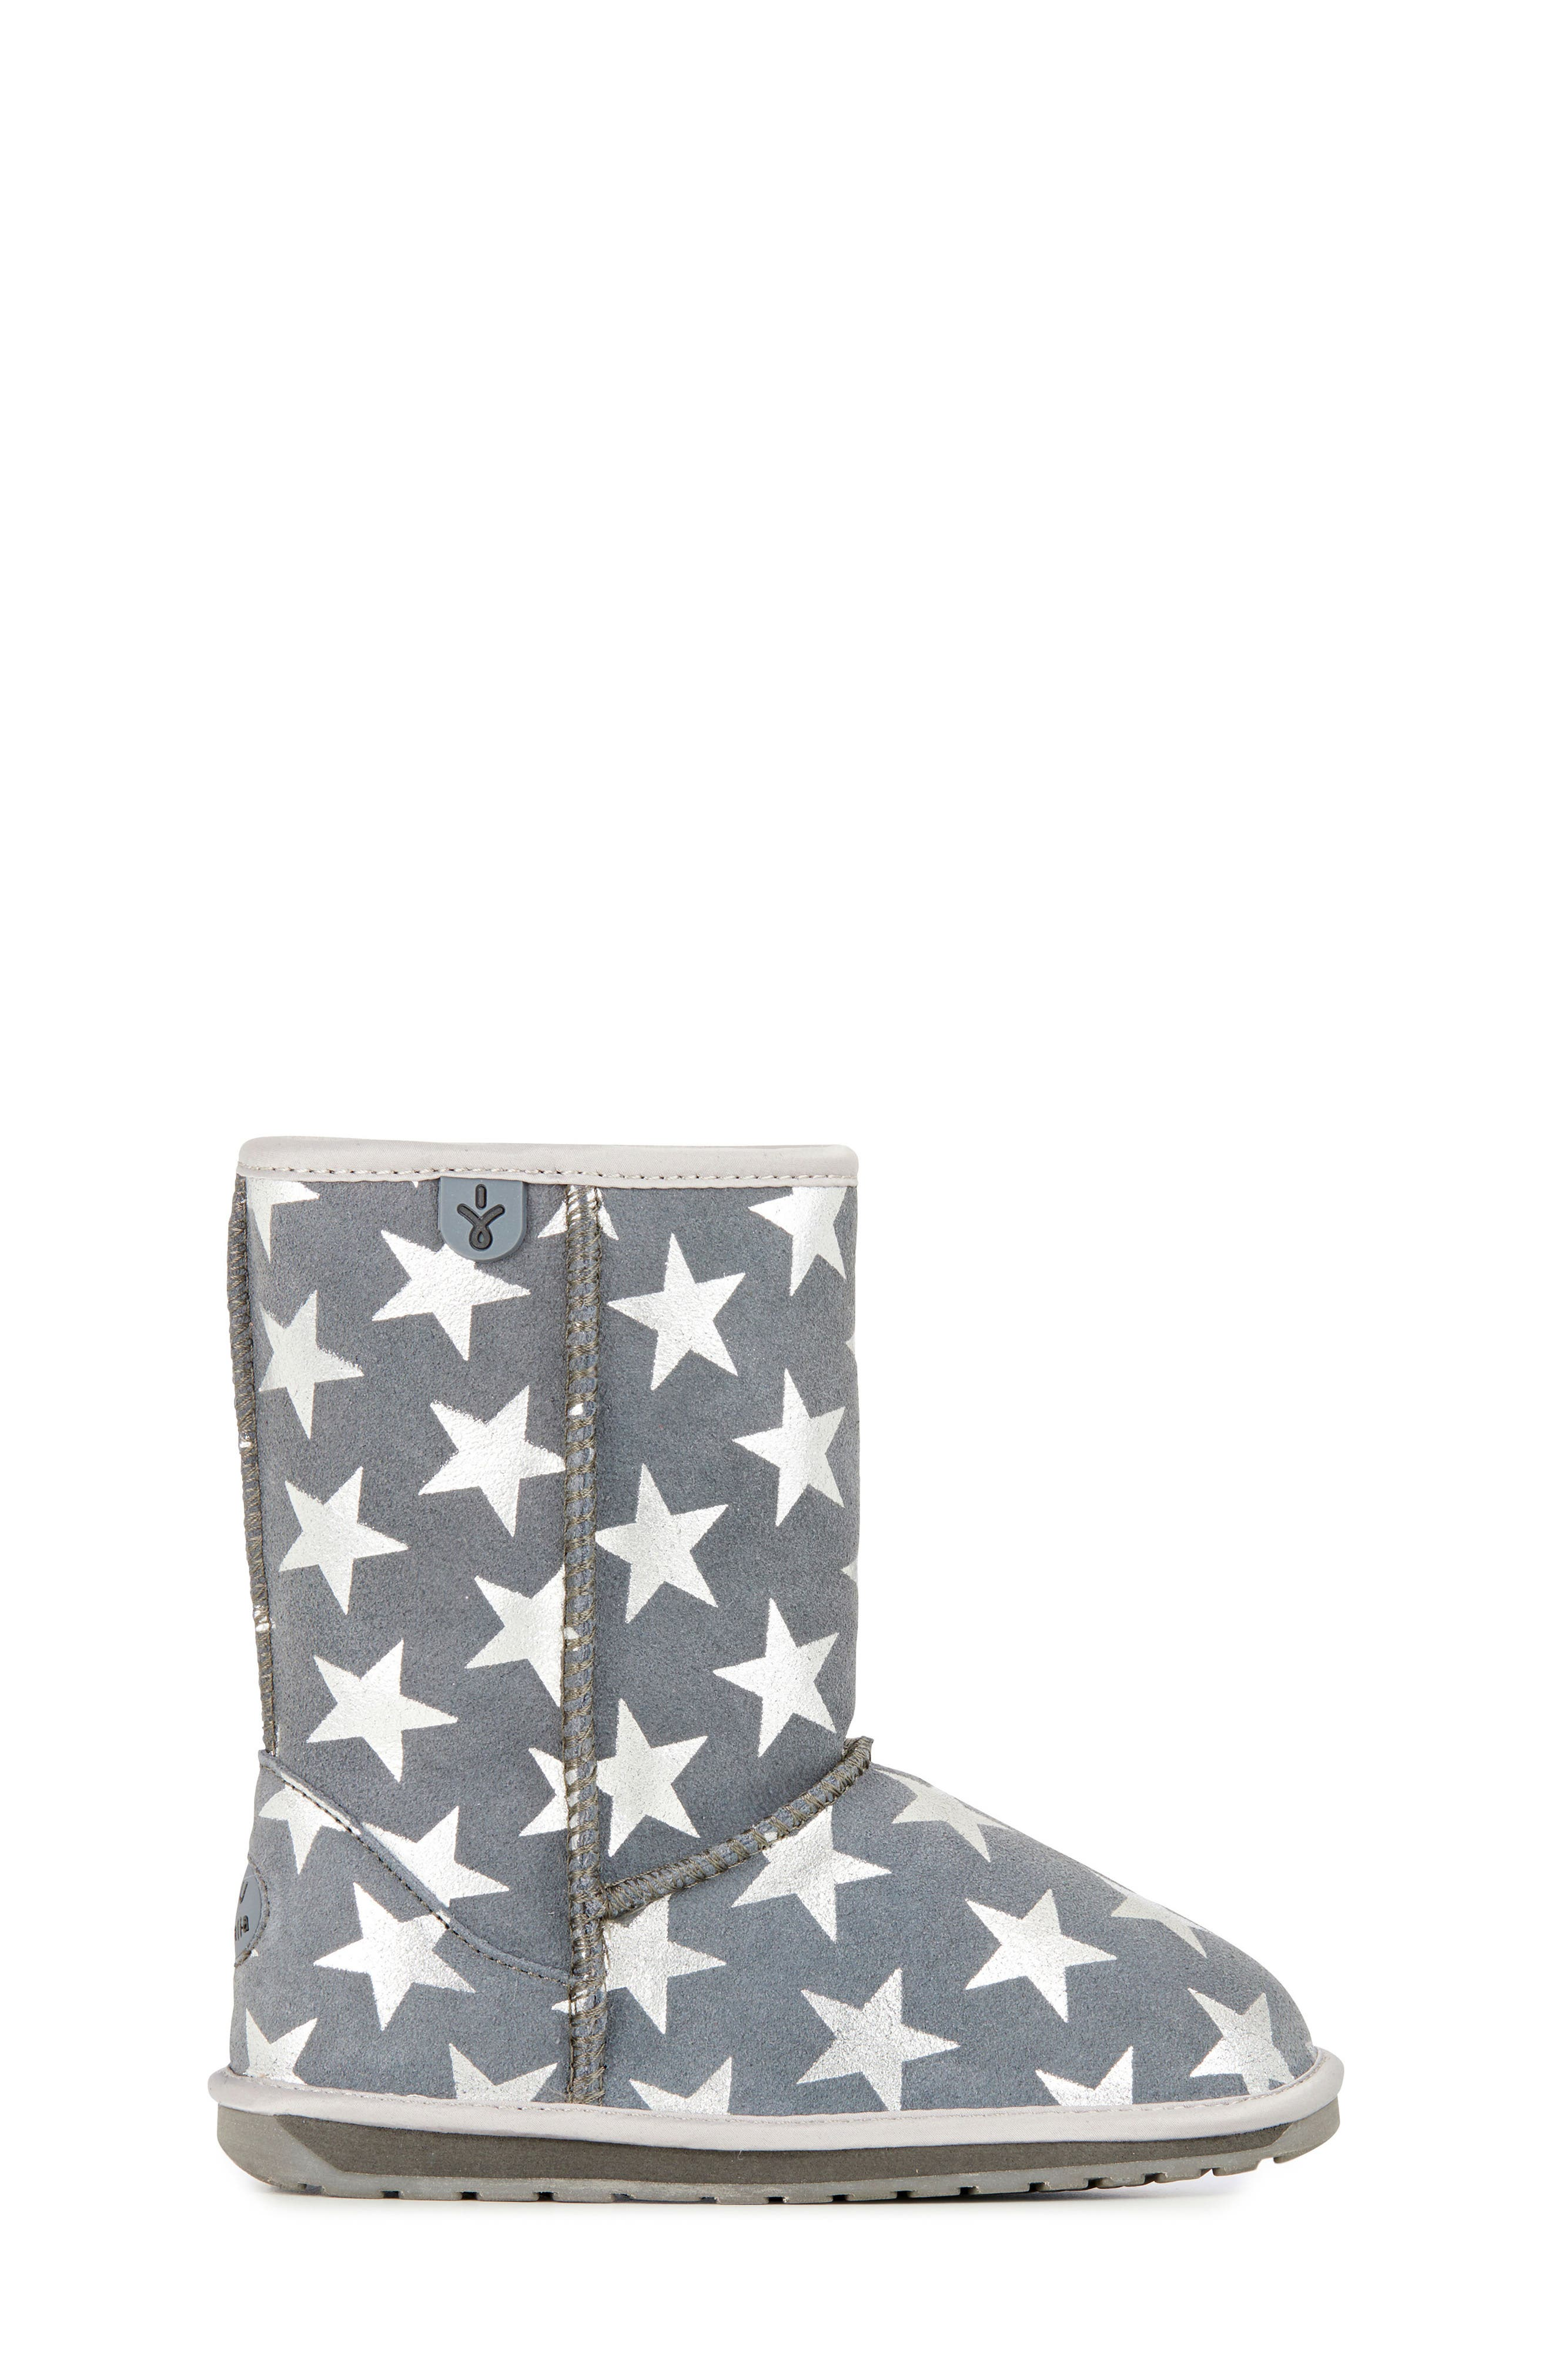 EMUAustralia Starry Night Boot,                             Alternate thumbnail 3, color,                             CHARCOAL